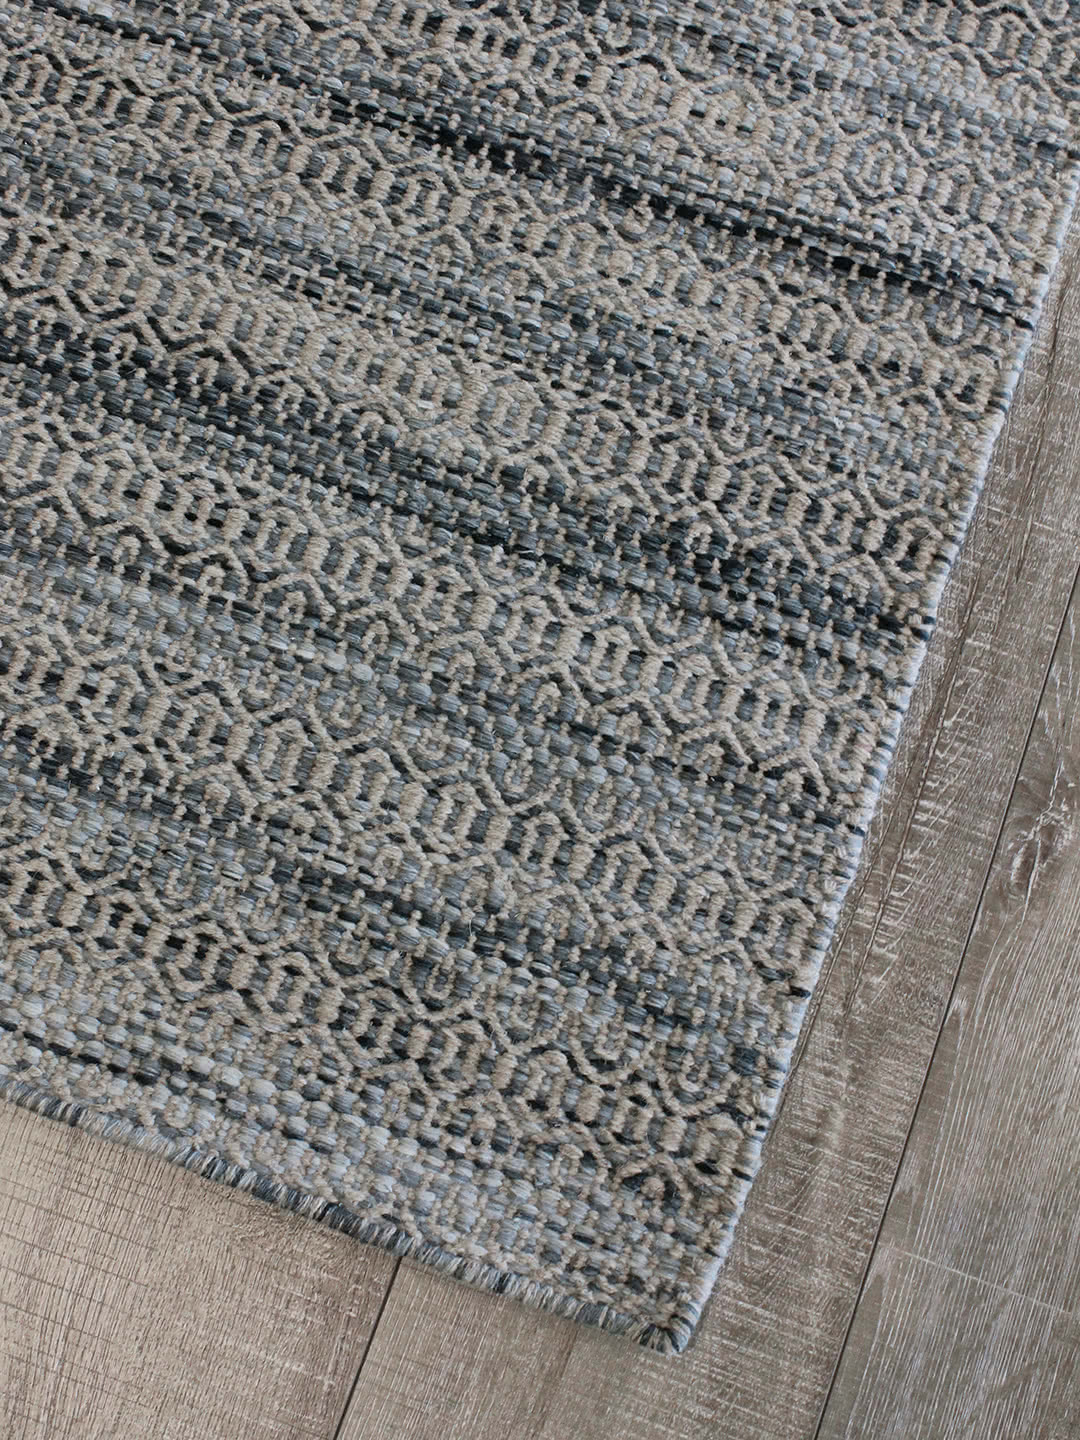 Denim pure wool rugs Perth